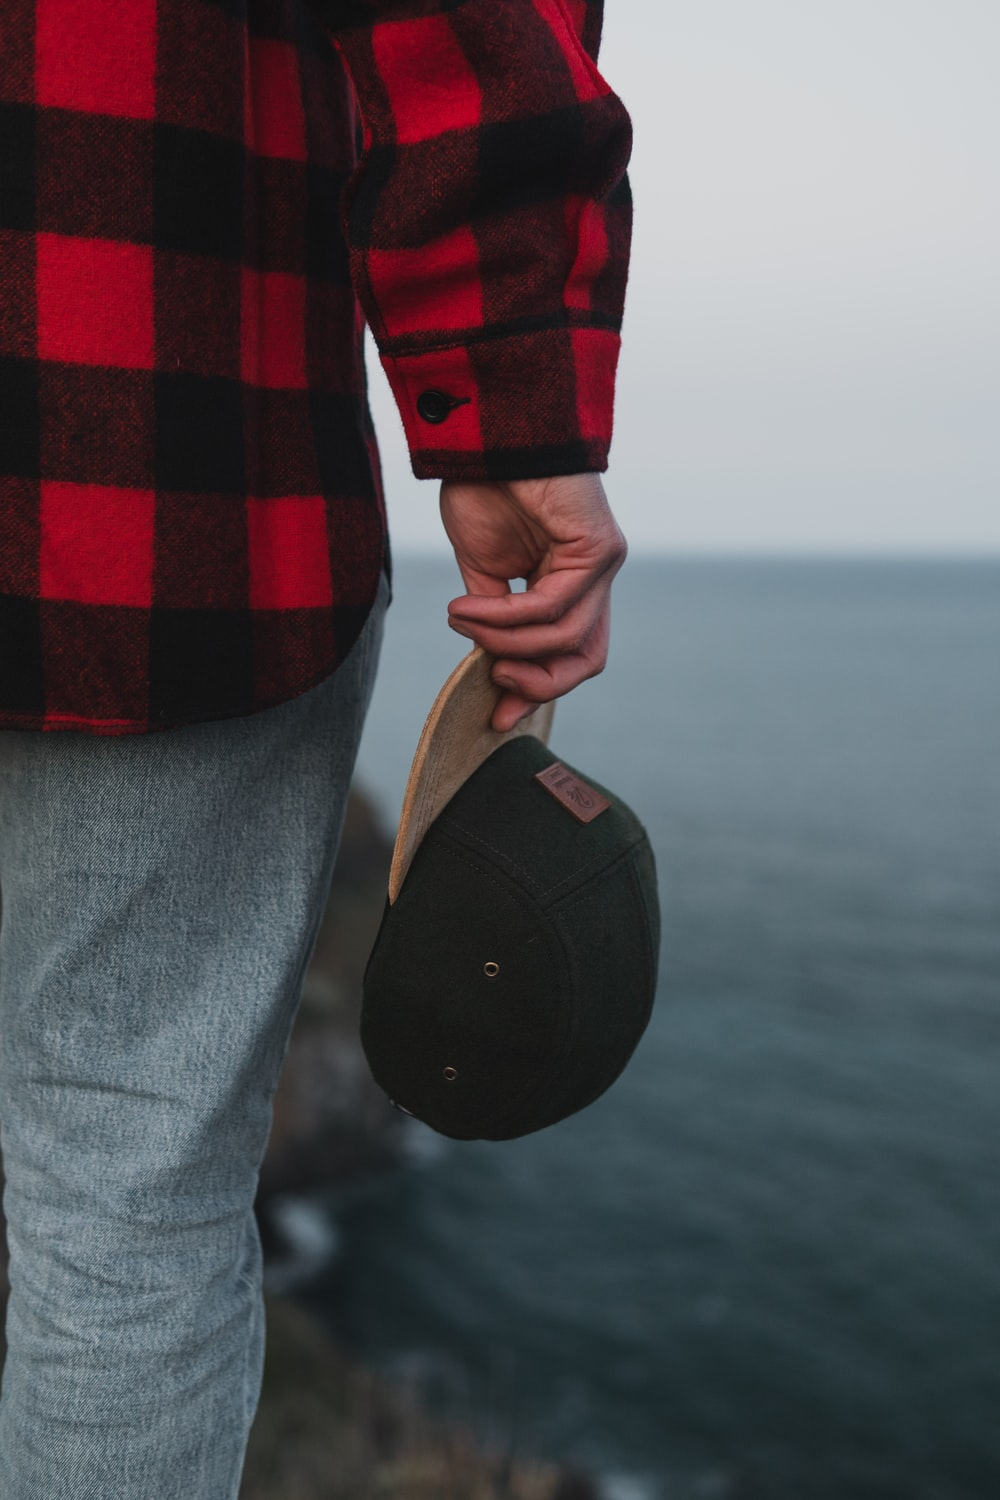 person wearing red and black long-sleeved shirt holding black and brown fitted cap while standing on cliff viewing body of water